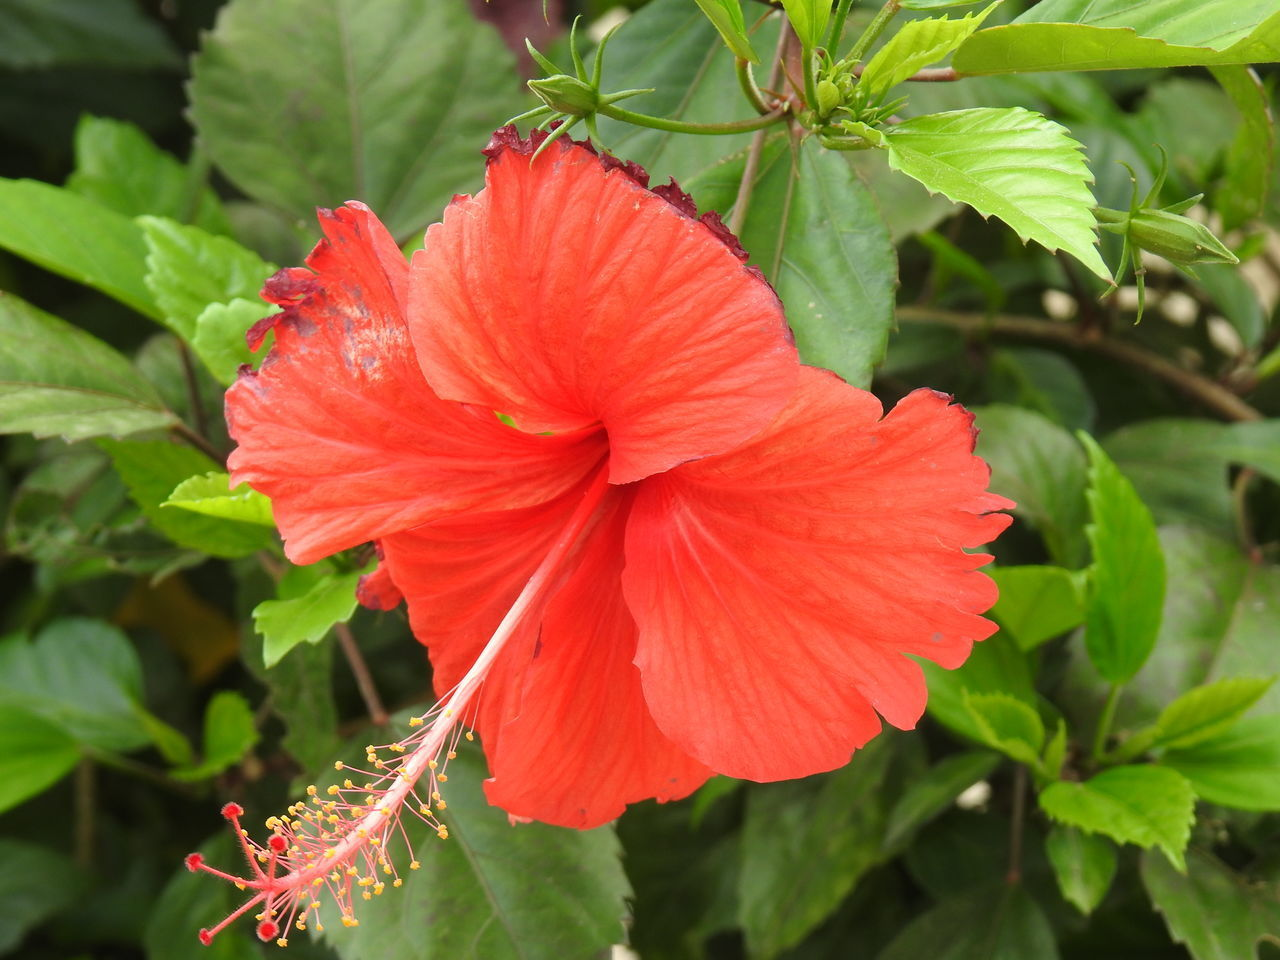 CLOSE-UP OF RED HIBISCUS FLOWER AGAINST GREEN LEAVES